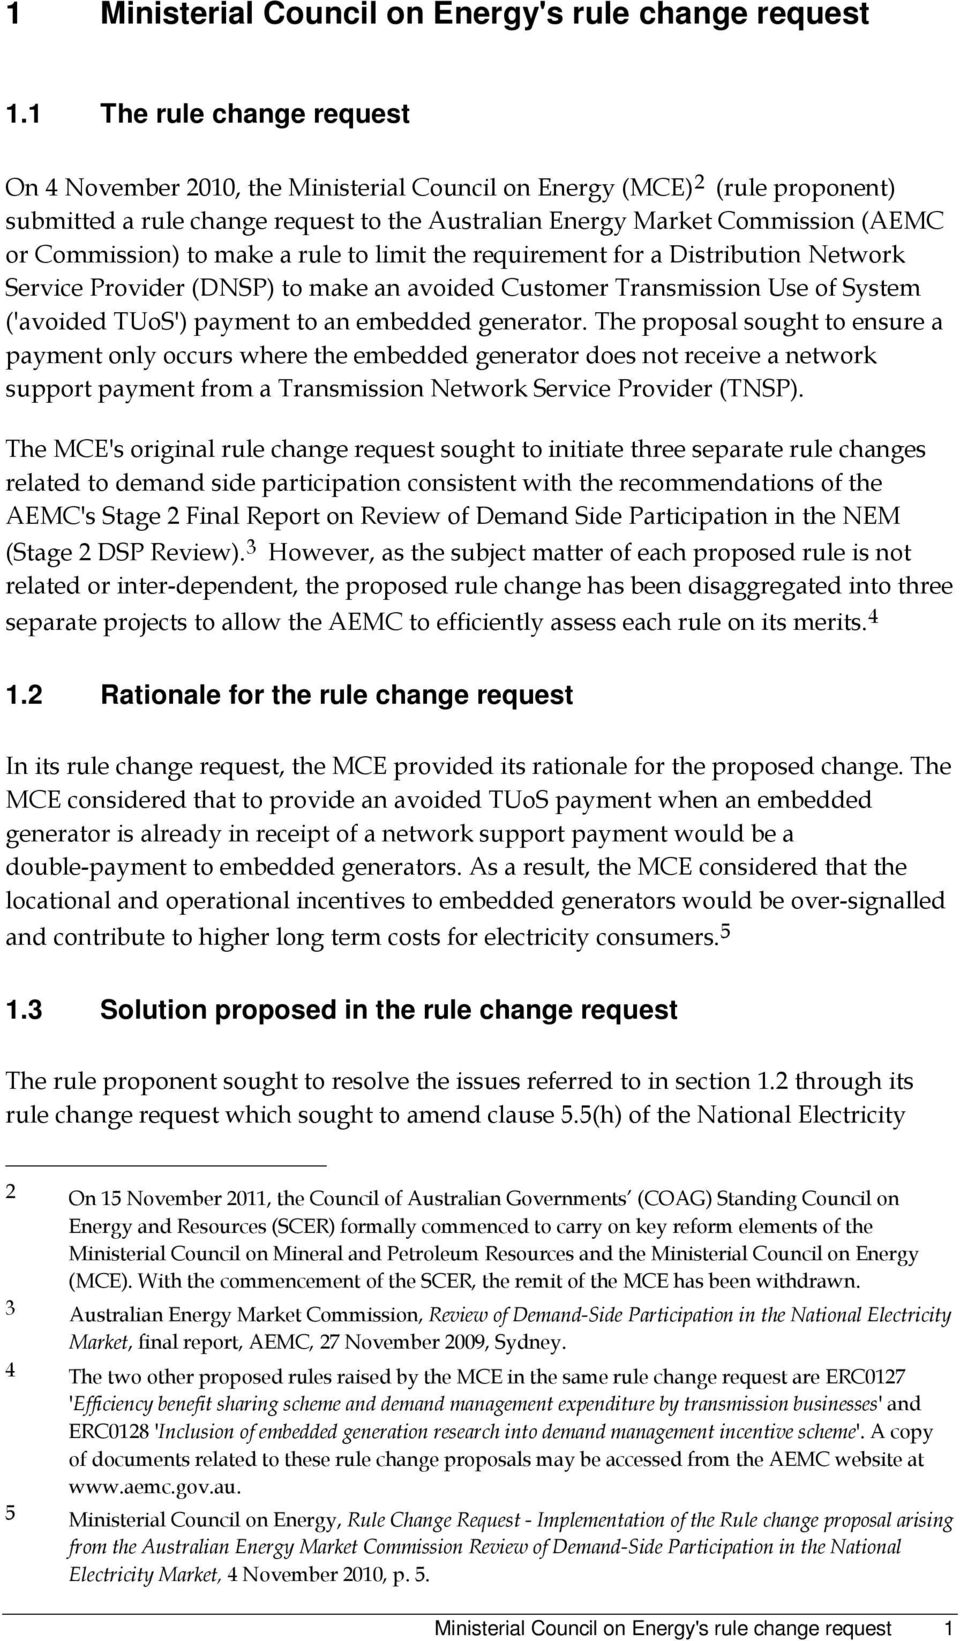 Commission) to make a rule to limit the requirement for a Distribution Network Service Provider (DNSP) to make an avoided Customer Transmission Use of System ('avoided TUoS') payment to an embedded